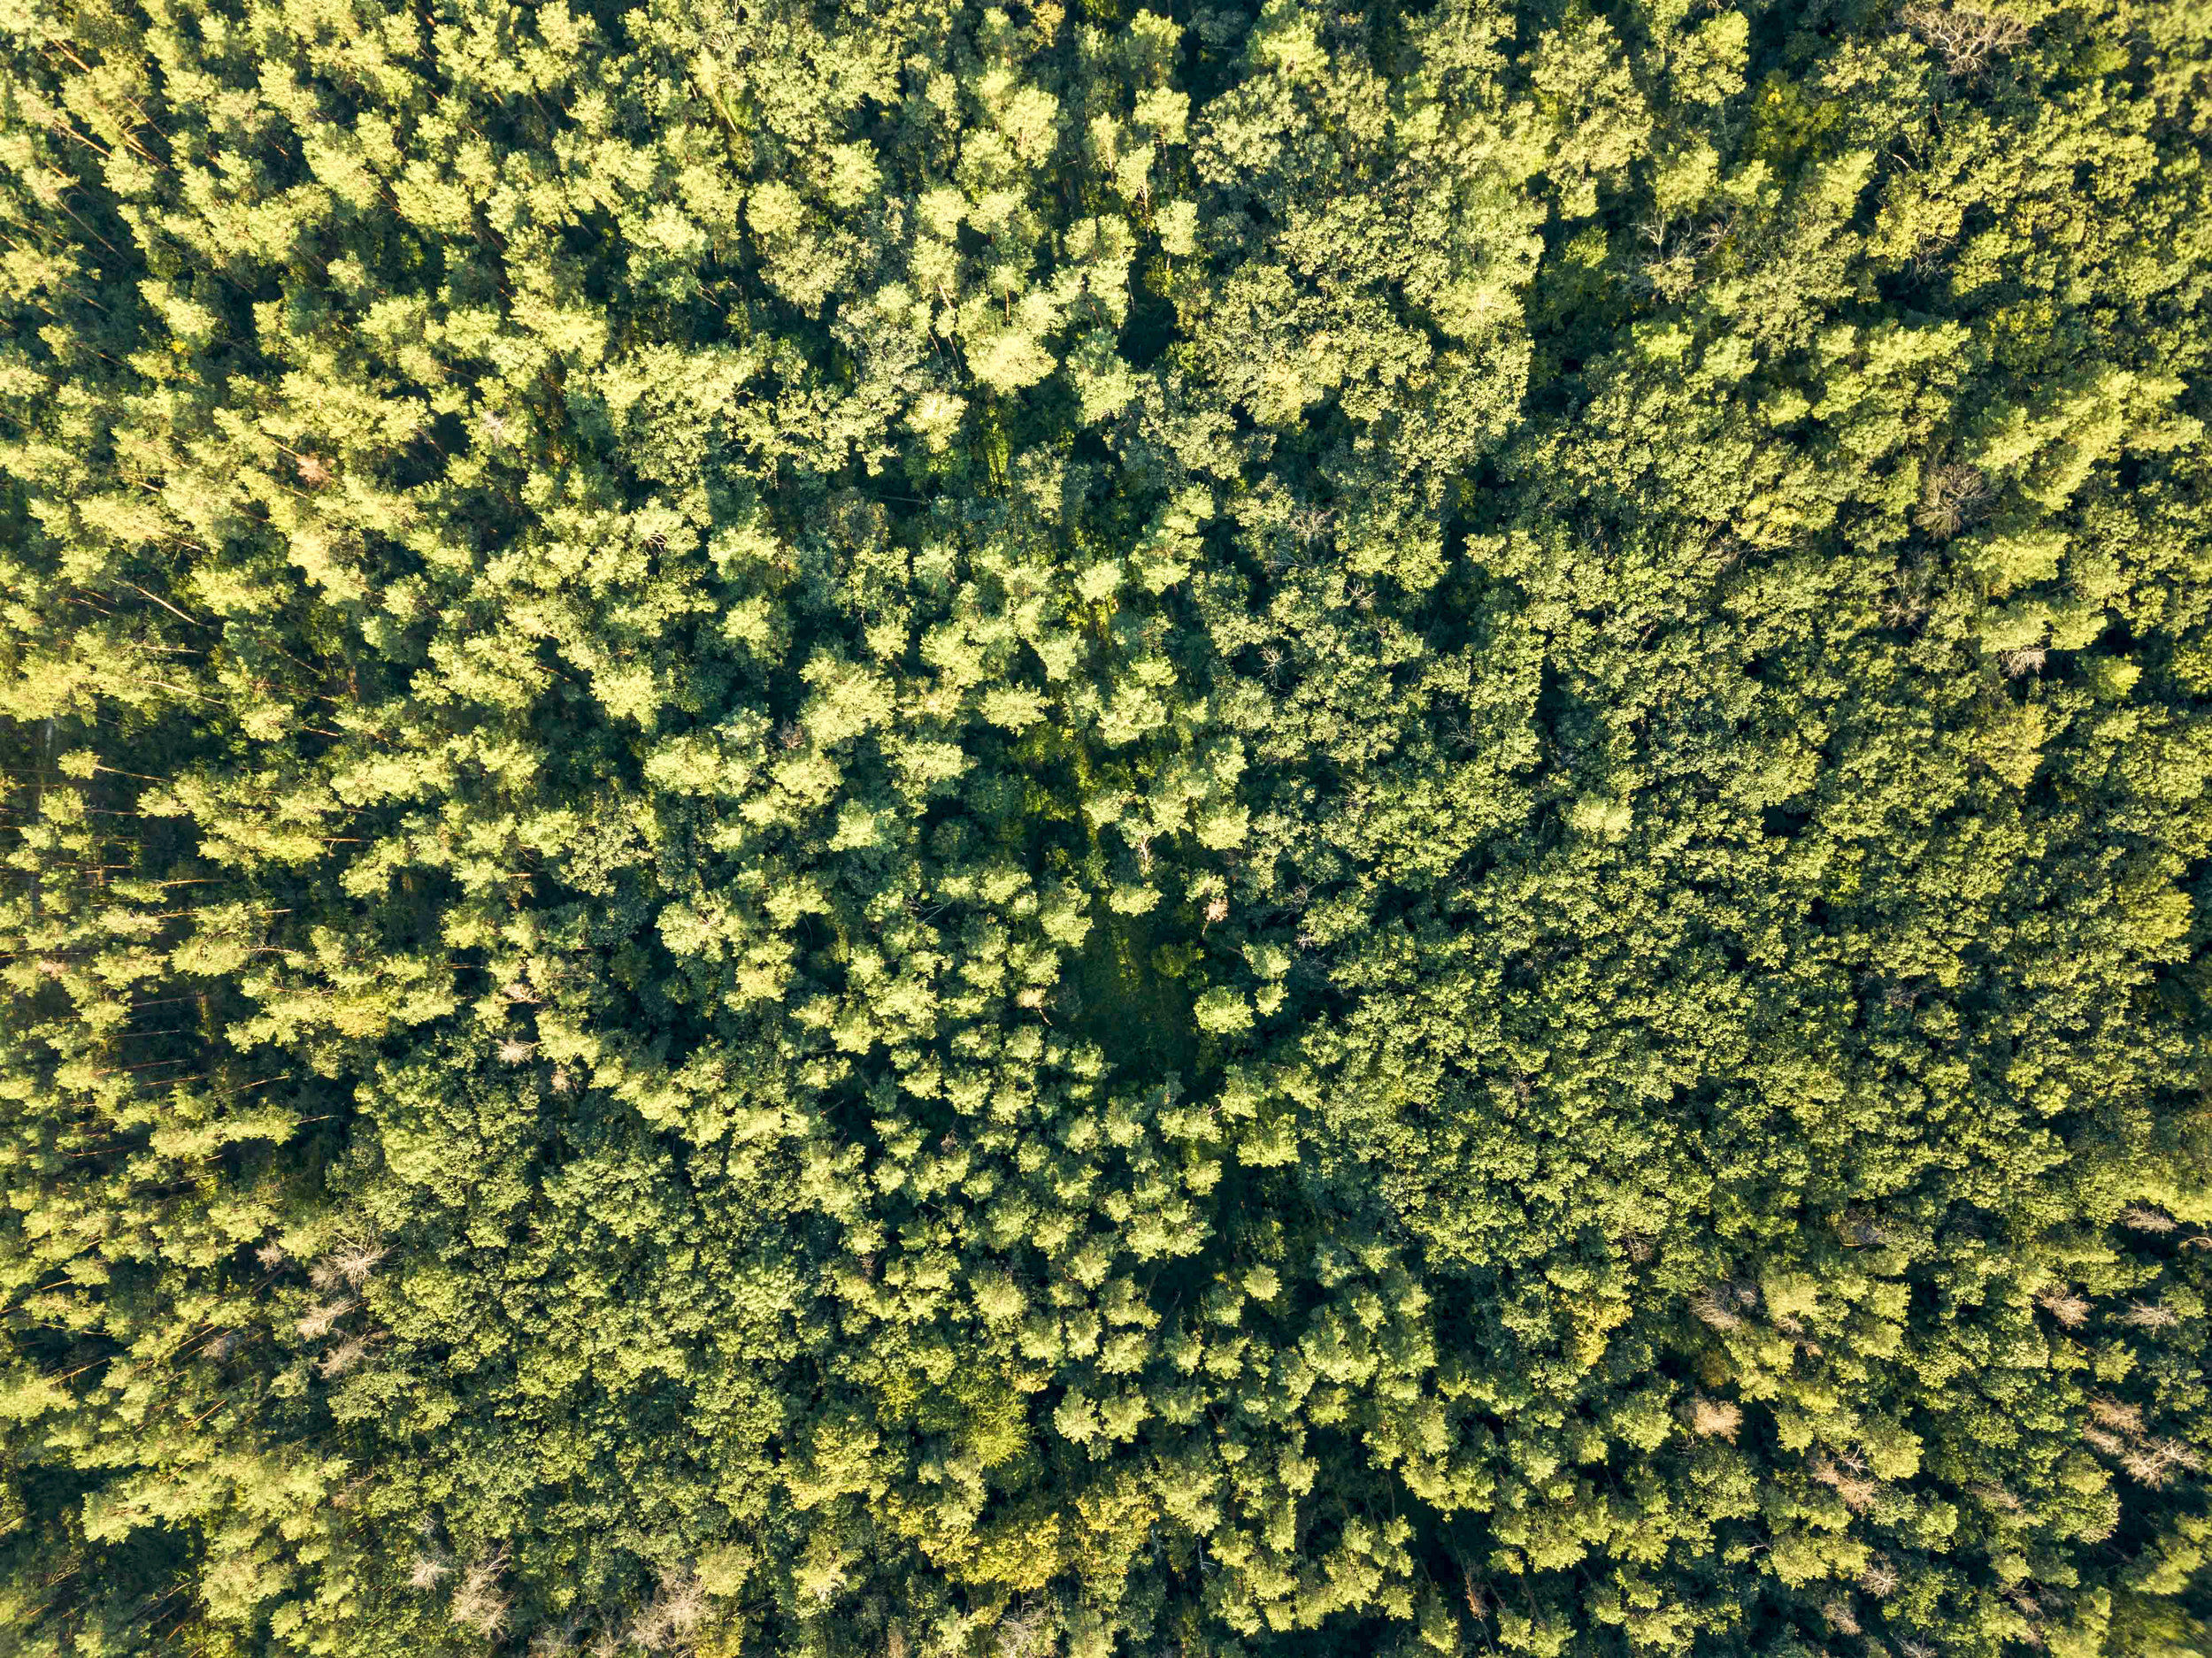 aerial-photograph-of-a-summer-day-on-green-P34V56B.jpg